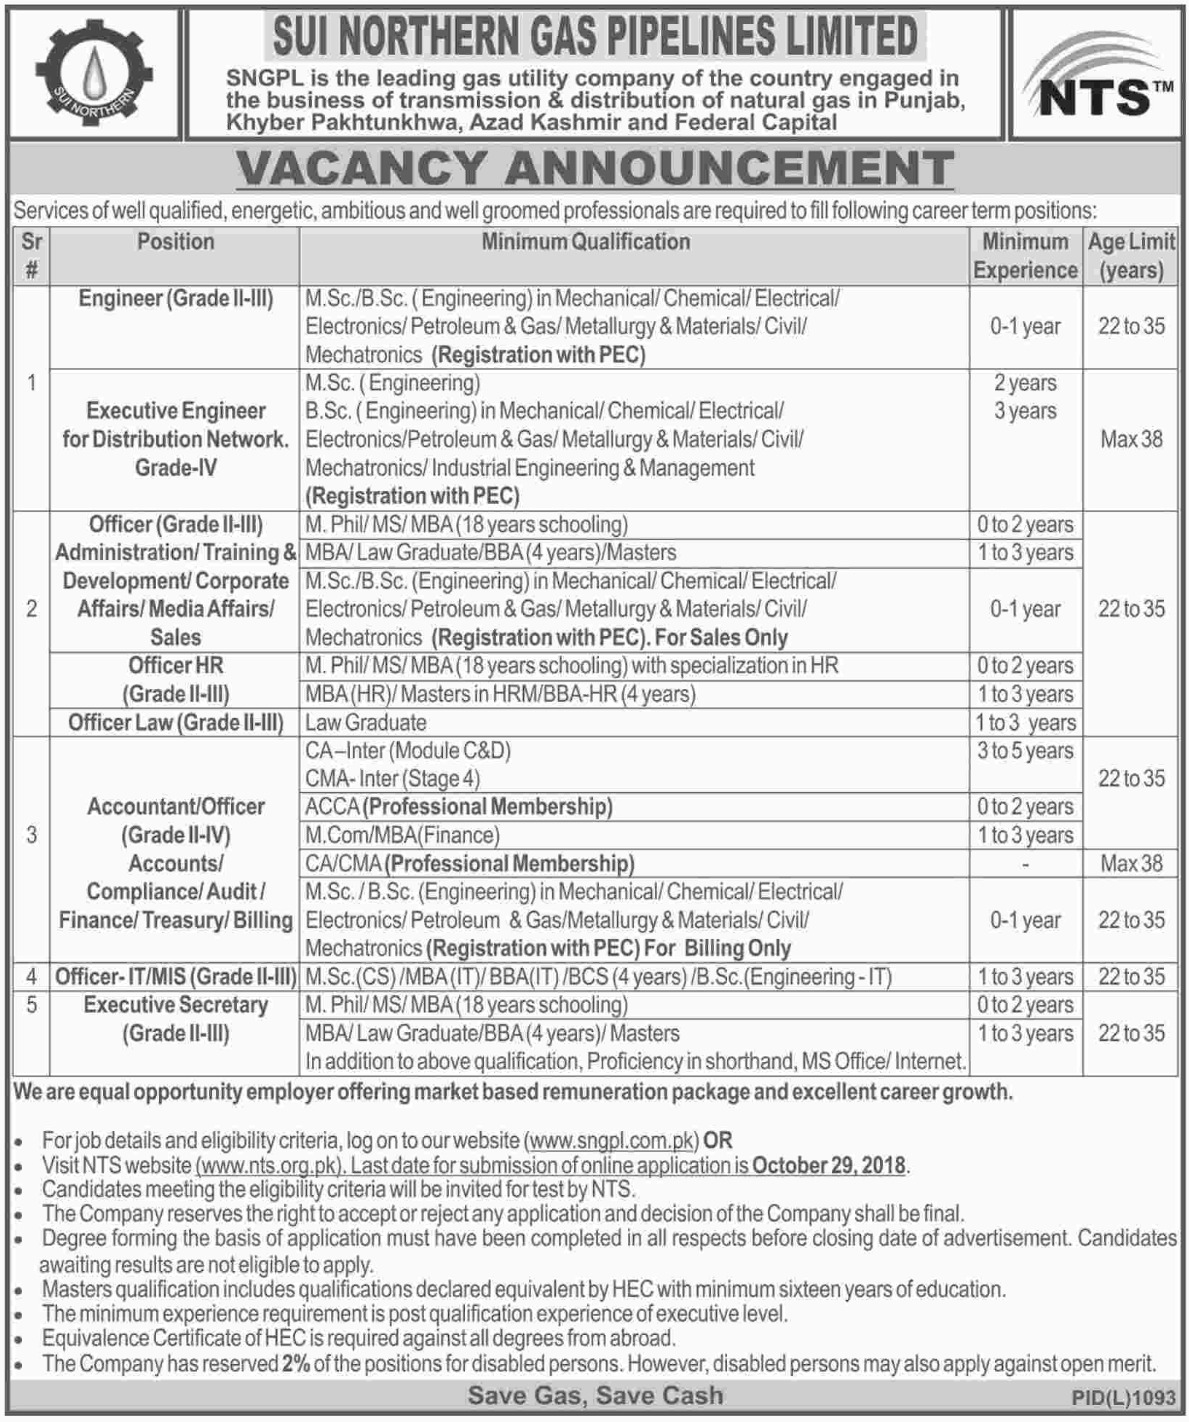 SNGPL Sui Northern Gas Pipelines Limited Jobs Via NTS